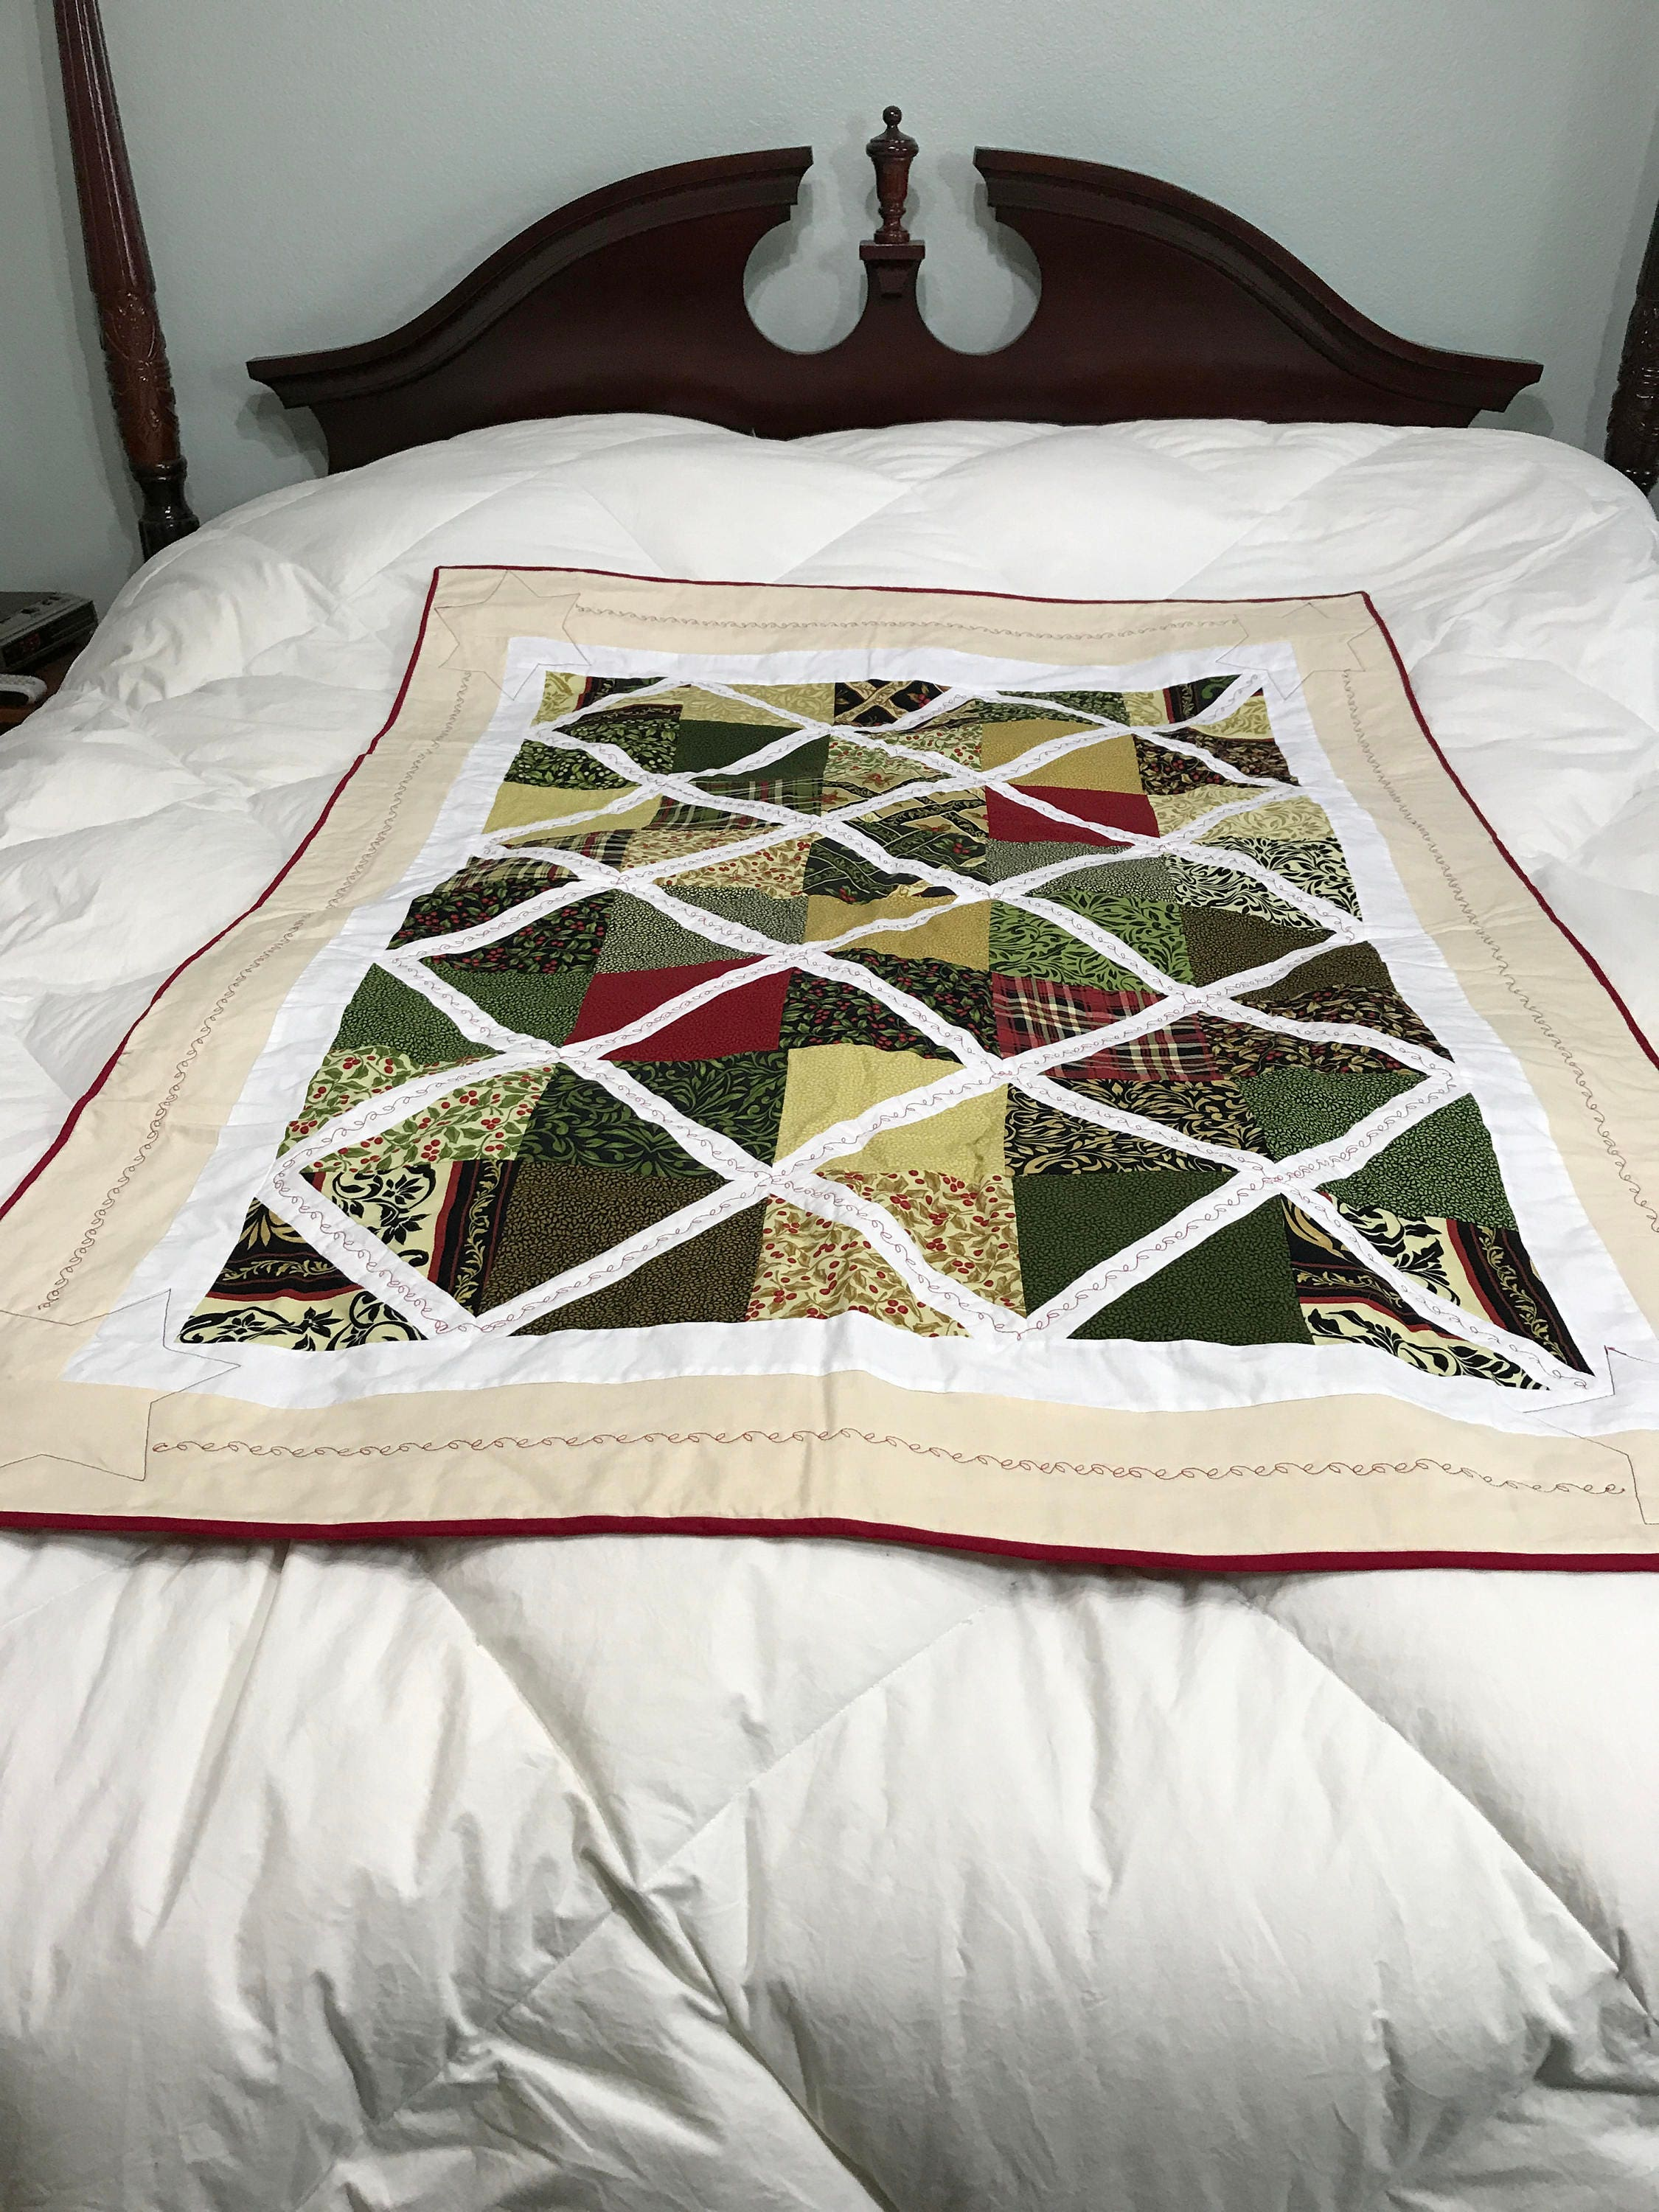 Quilted Lap Blanket, Quilted Throw Blanket, Winter Quilt, Lap ... : quilted lap throws - Adamdwight.com